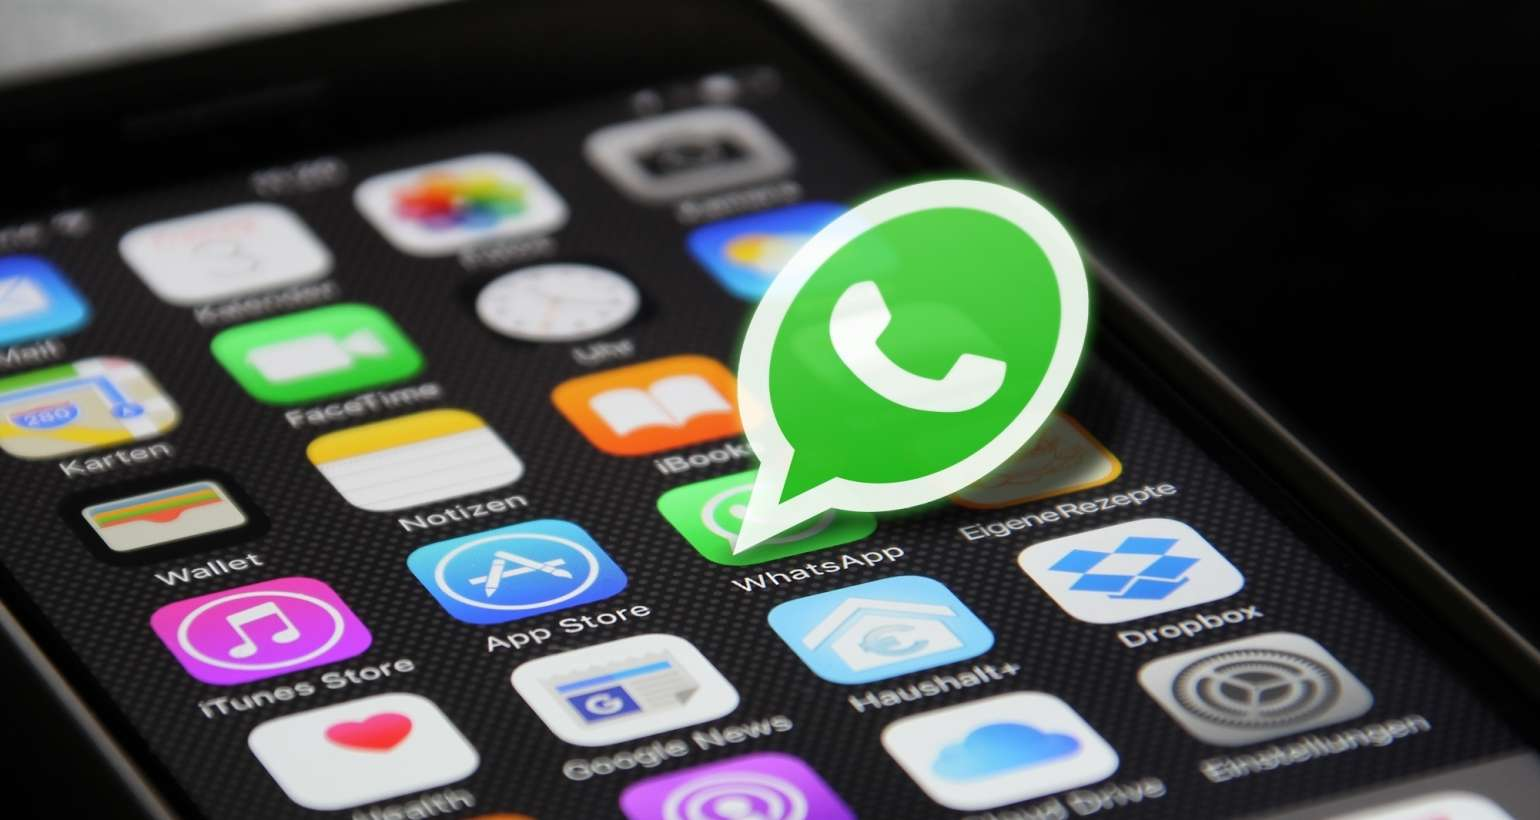 WhatsApp update boosts video calling to allow 8 people at once